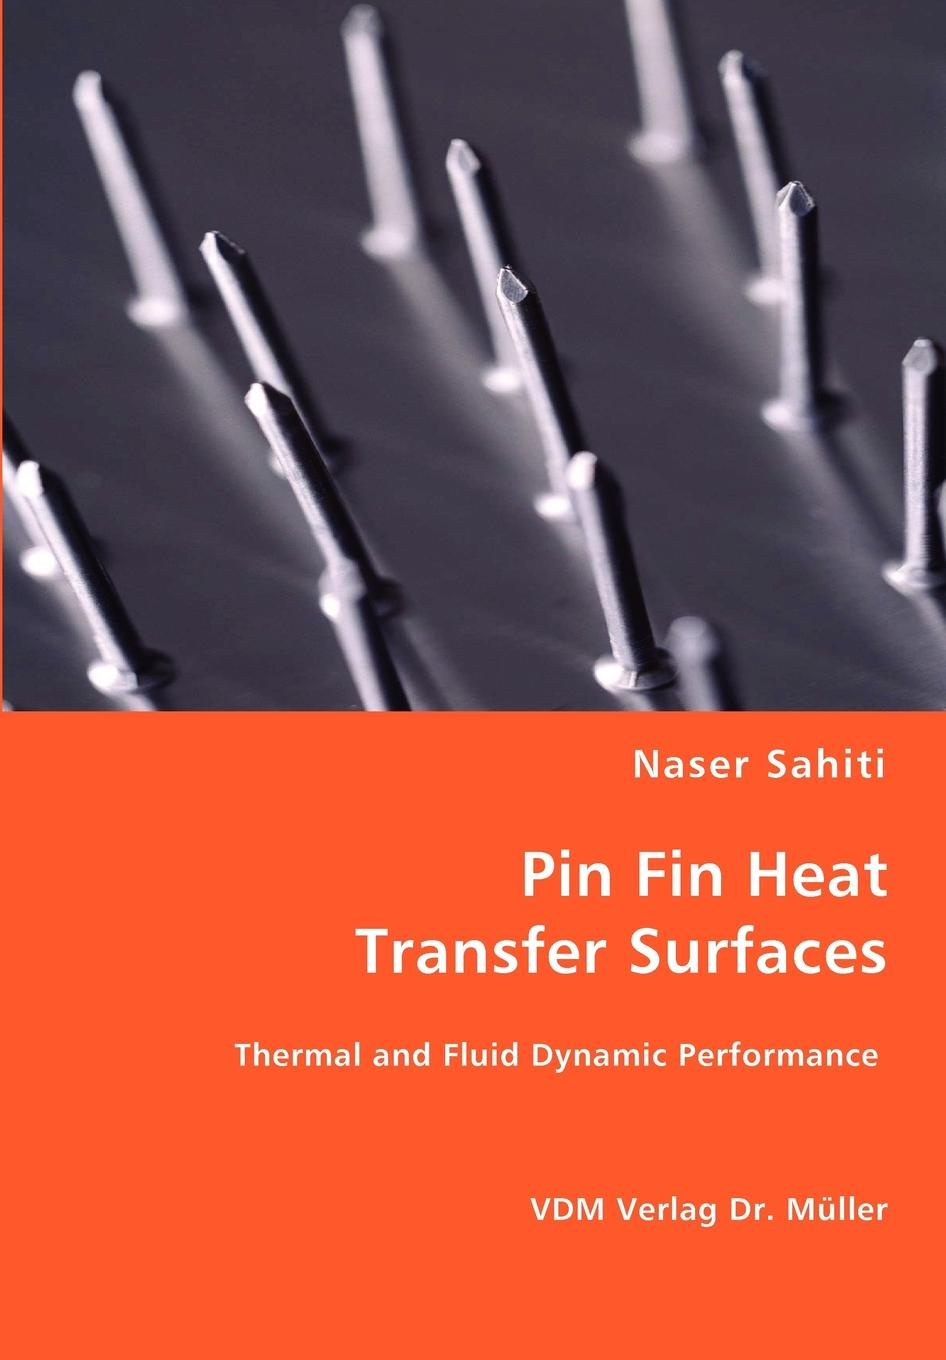 Фото - Naser Sahiti Pin Fin Heat Transfer Surfaces 2pcs heat press machine silicone pad mat 50x70x1cm high temperature resistant for heat transfer sublimation